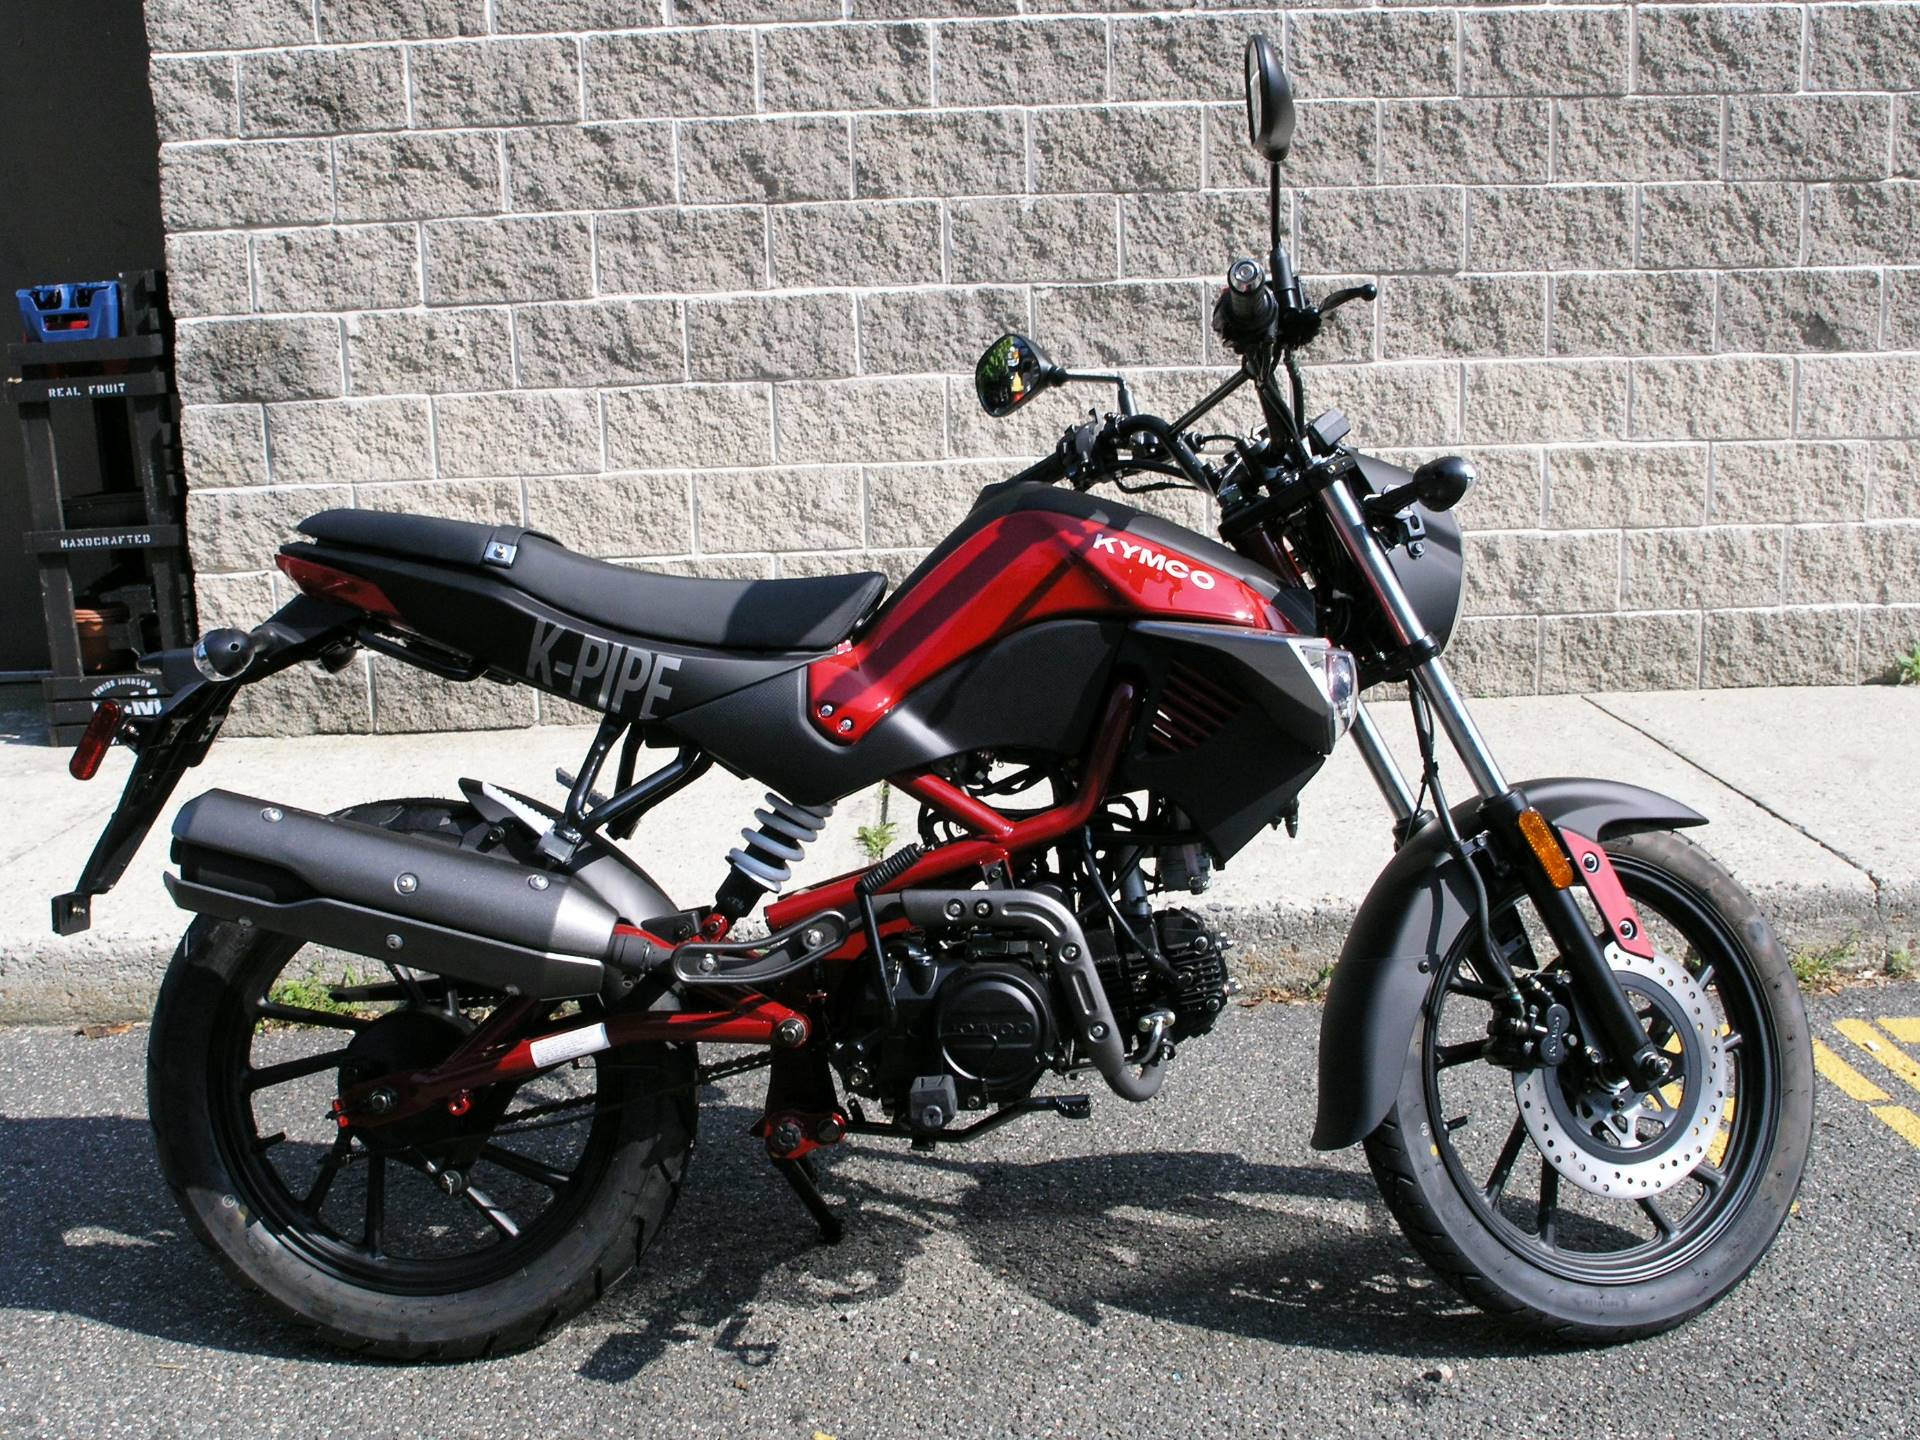 2017 Kymco K-Pipe 125 in Enfield, Connecticut - Photo 2